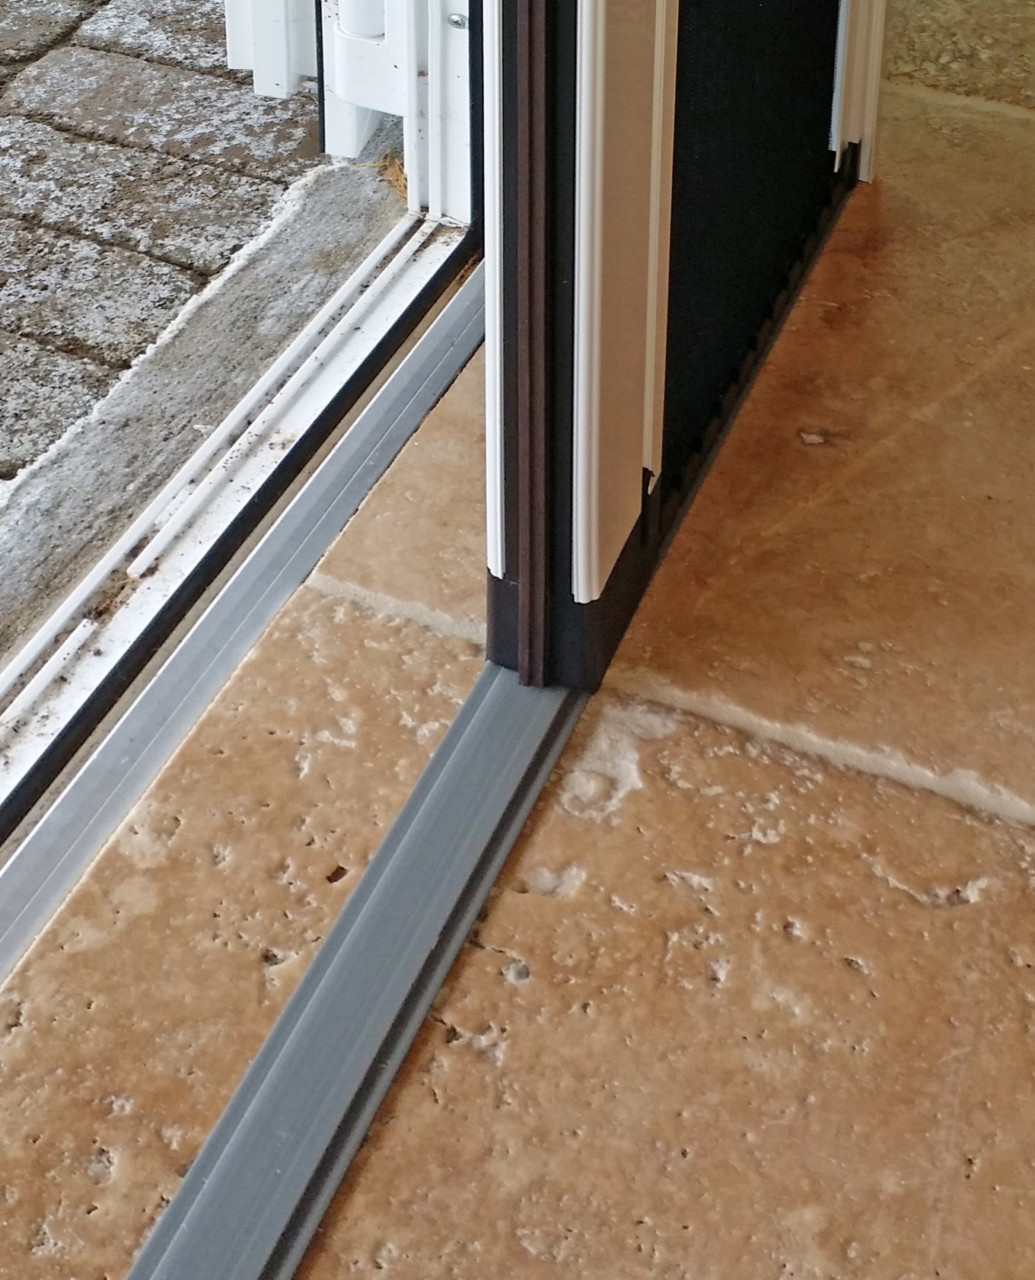 Retractable pleated screen door slider carpentry for Screens for patio doors retractable